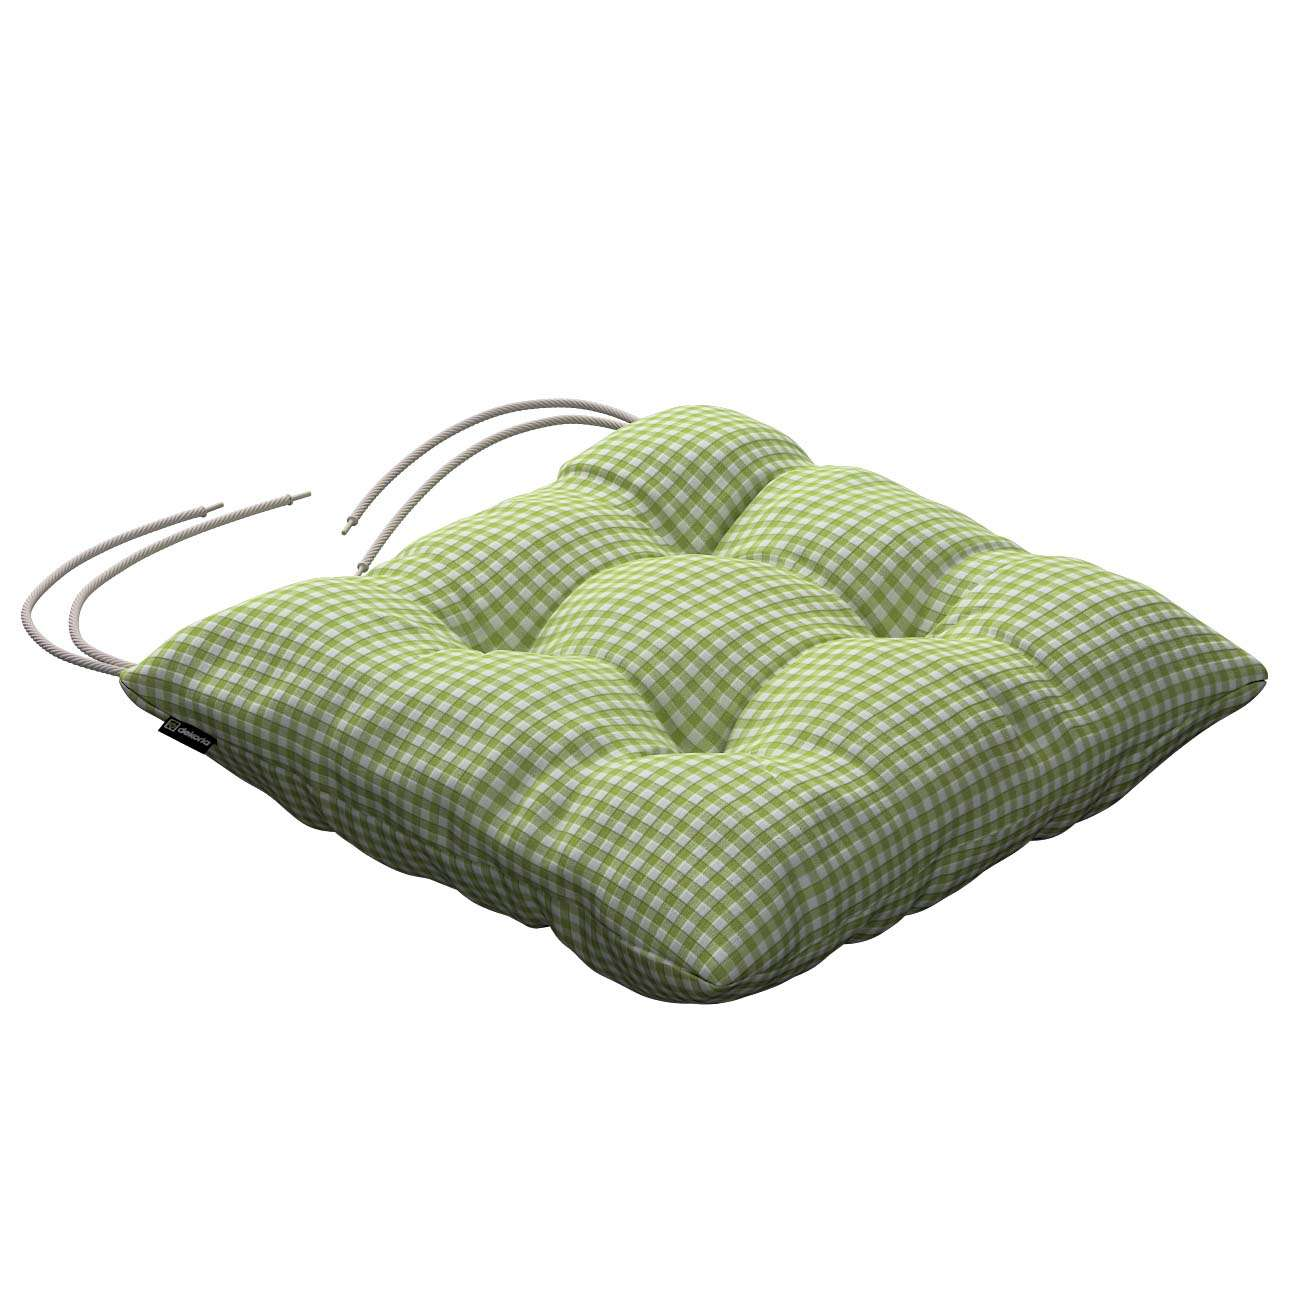 Jacek seat pad with ties 40 x 40 x 8 cm (16 x 16 x 3 inch) in collection Quadro, fabric: 136-33